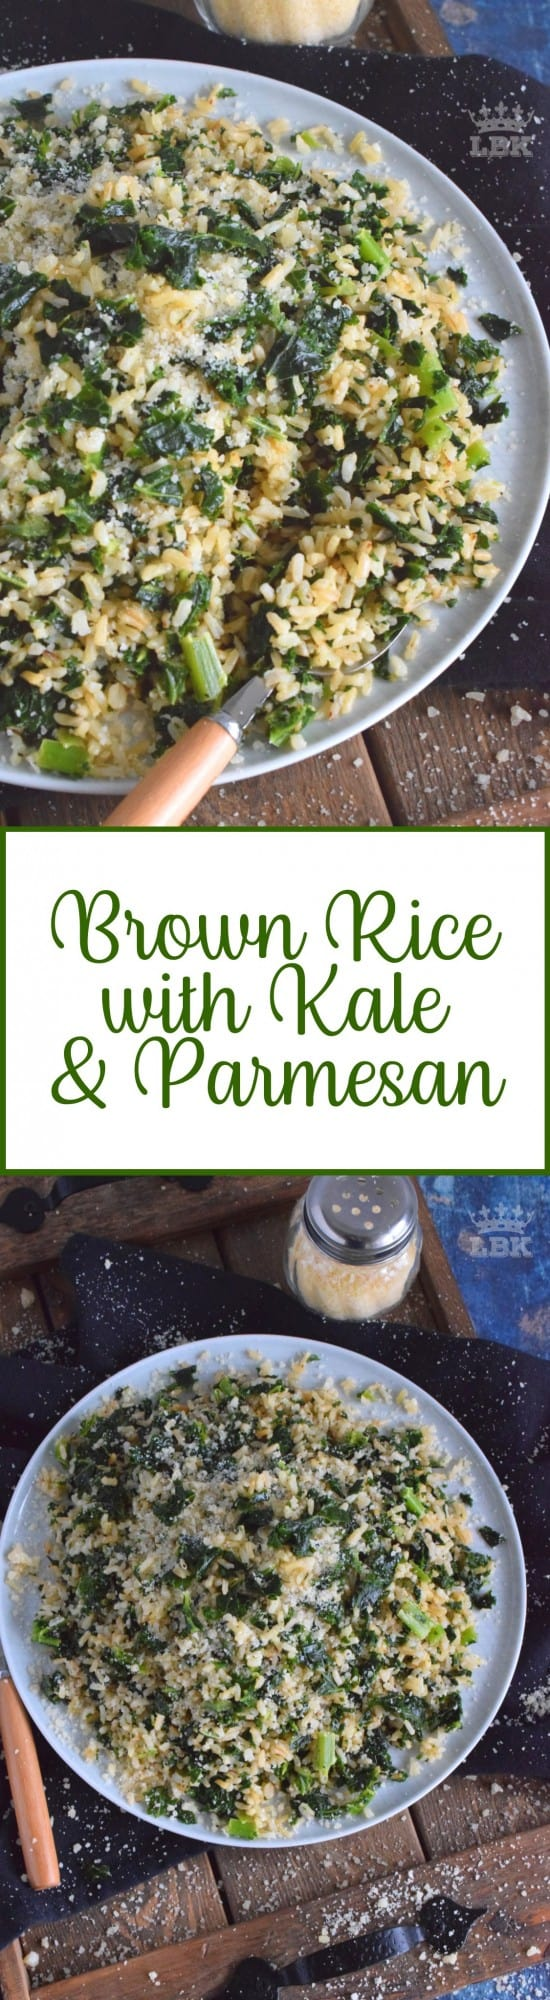 Brown Rice with Kale and Parmesan - A quick and healthy side dish using instant brown rice, frozen chopped kale, and fresh parmesan; reheat the next day for a great work lunch! #brown #rice #kale #side #easy